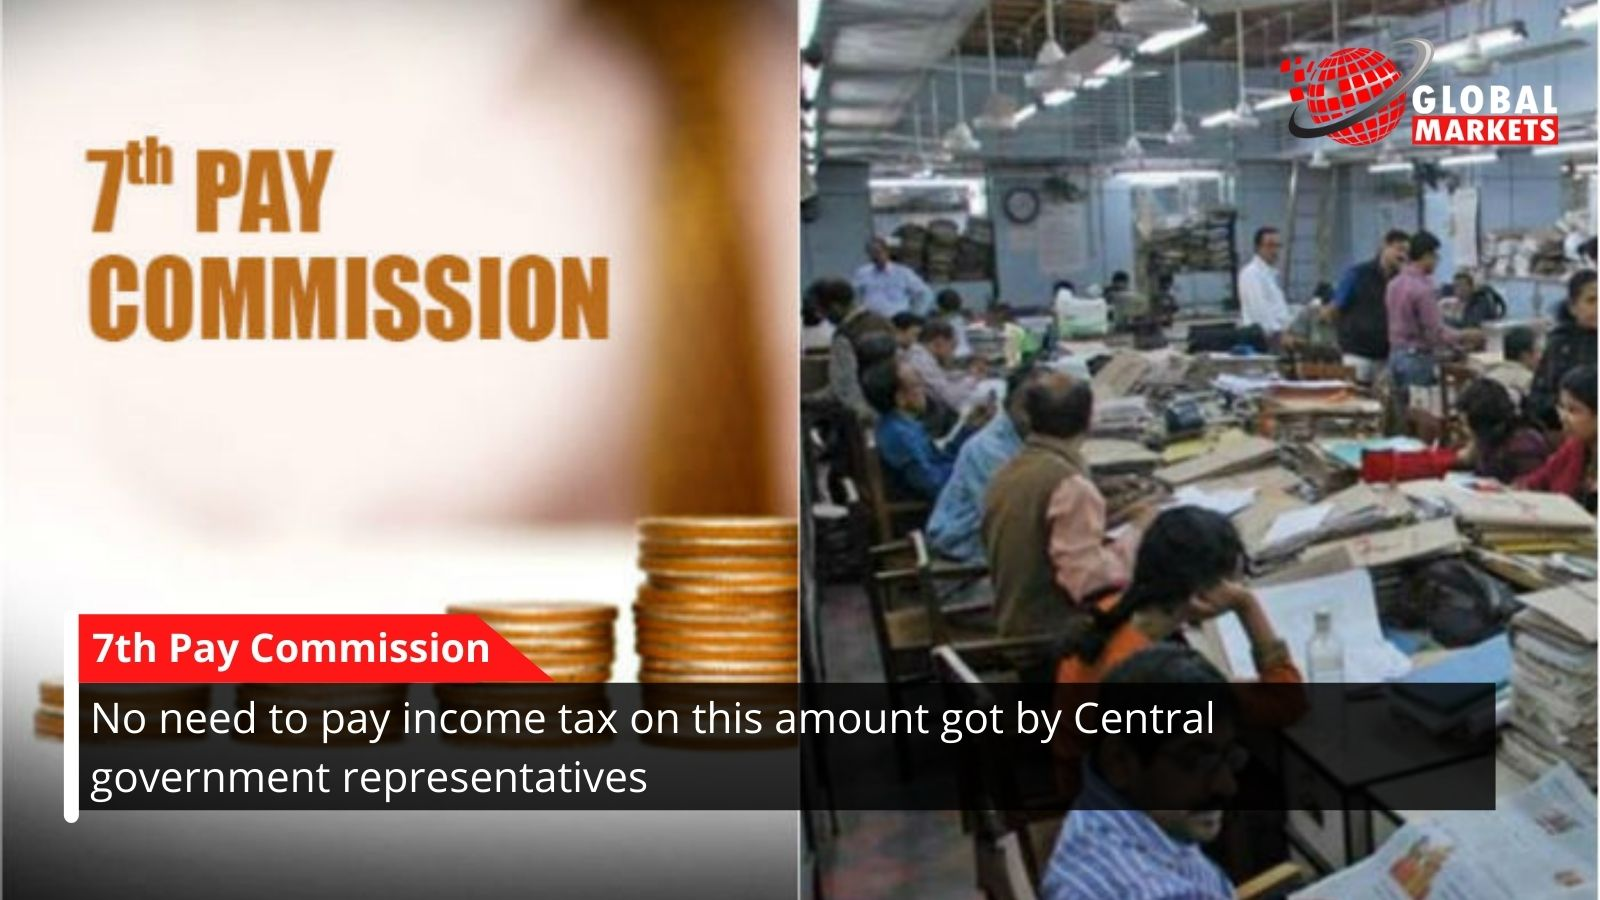 No need to pay income tax on this amount got by Central government representatives